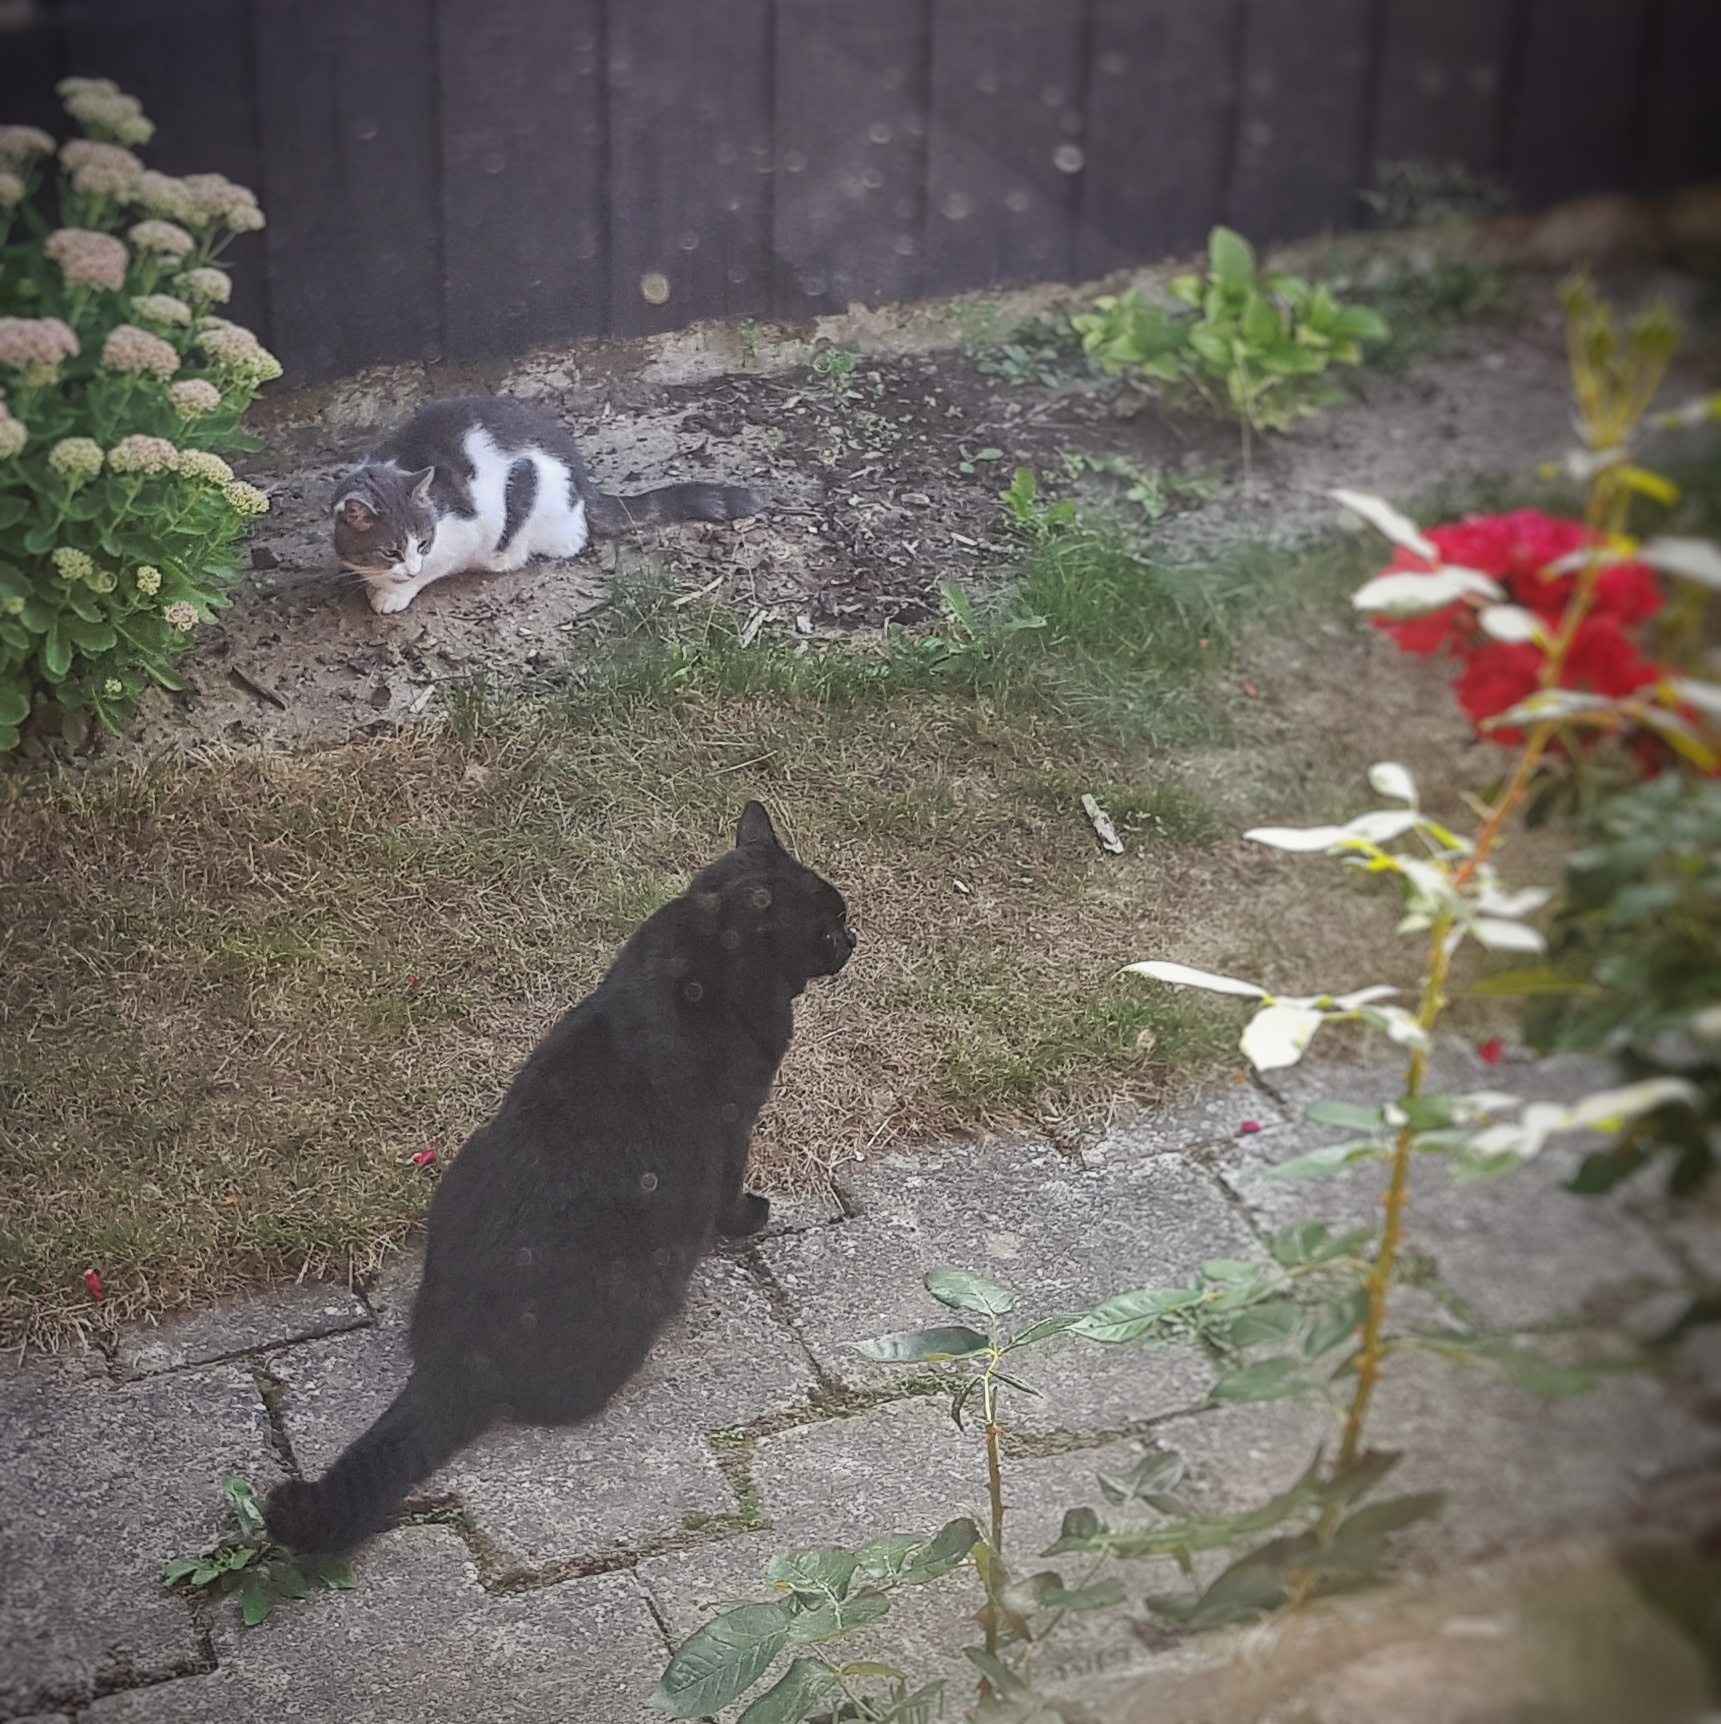 Day 235 - August 23: Imminent catfight